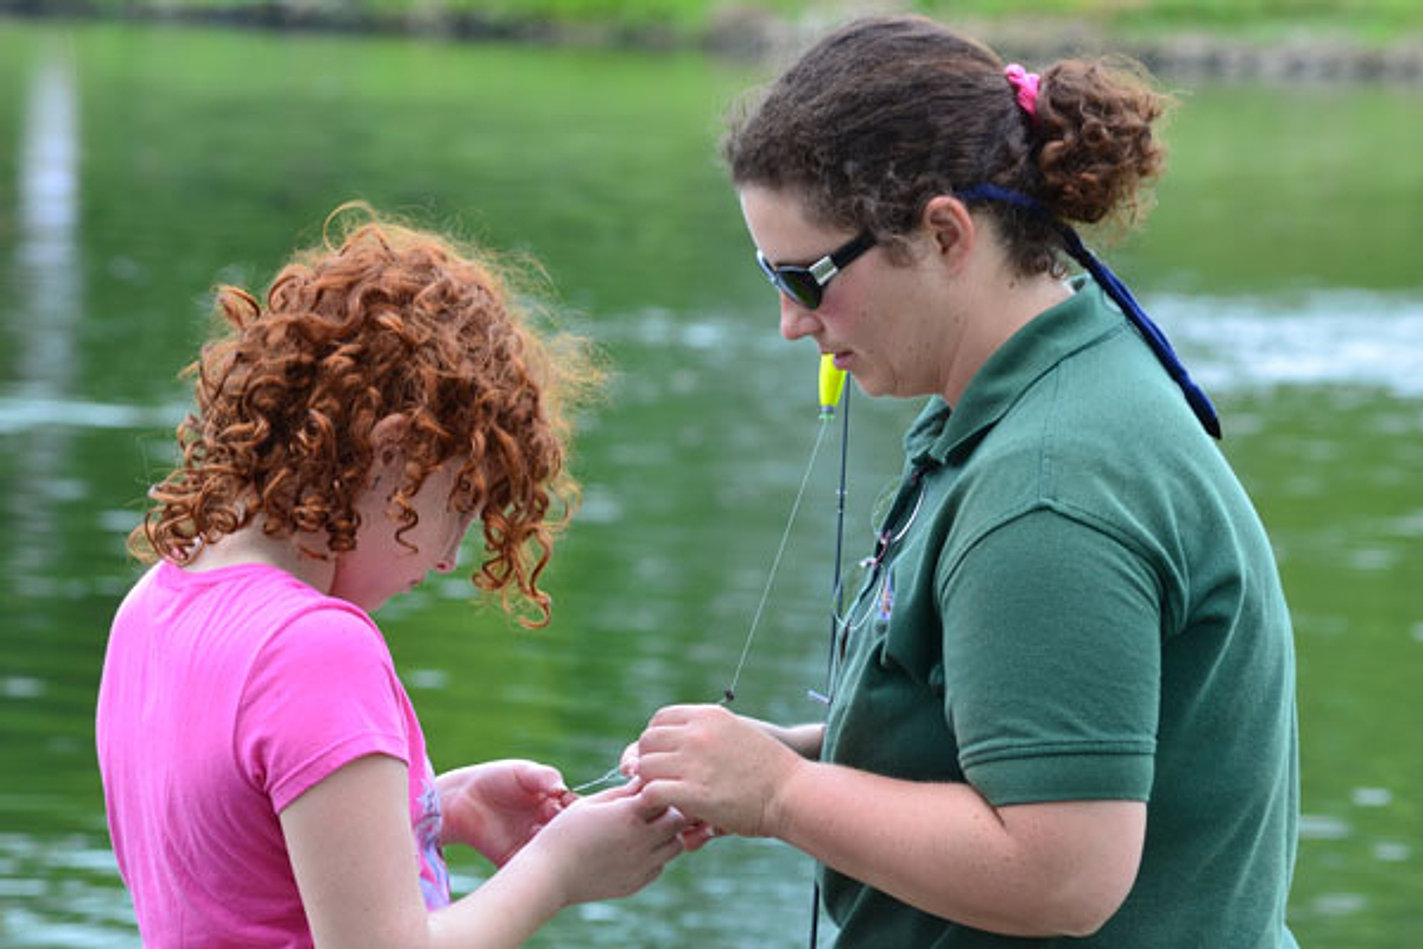 Friends of discover nature fishing free st louis fishing for Missouri fishing license age